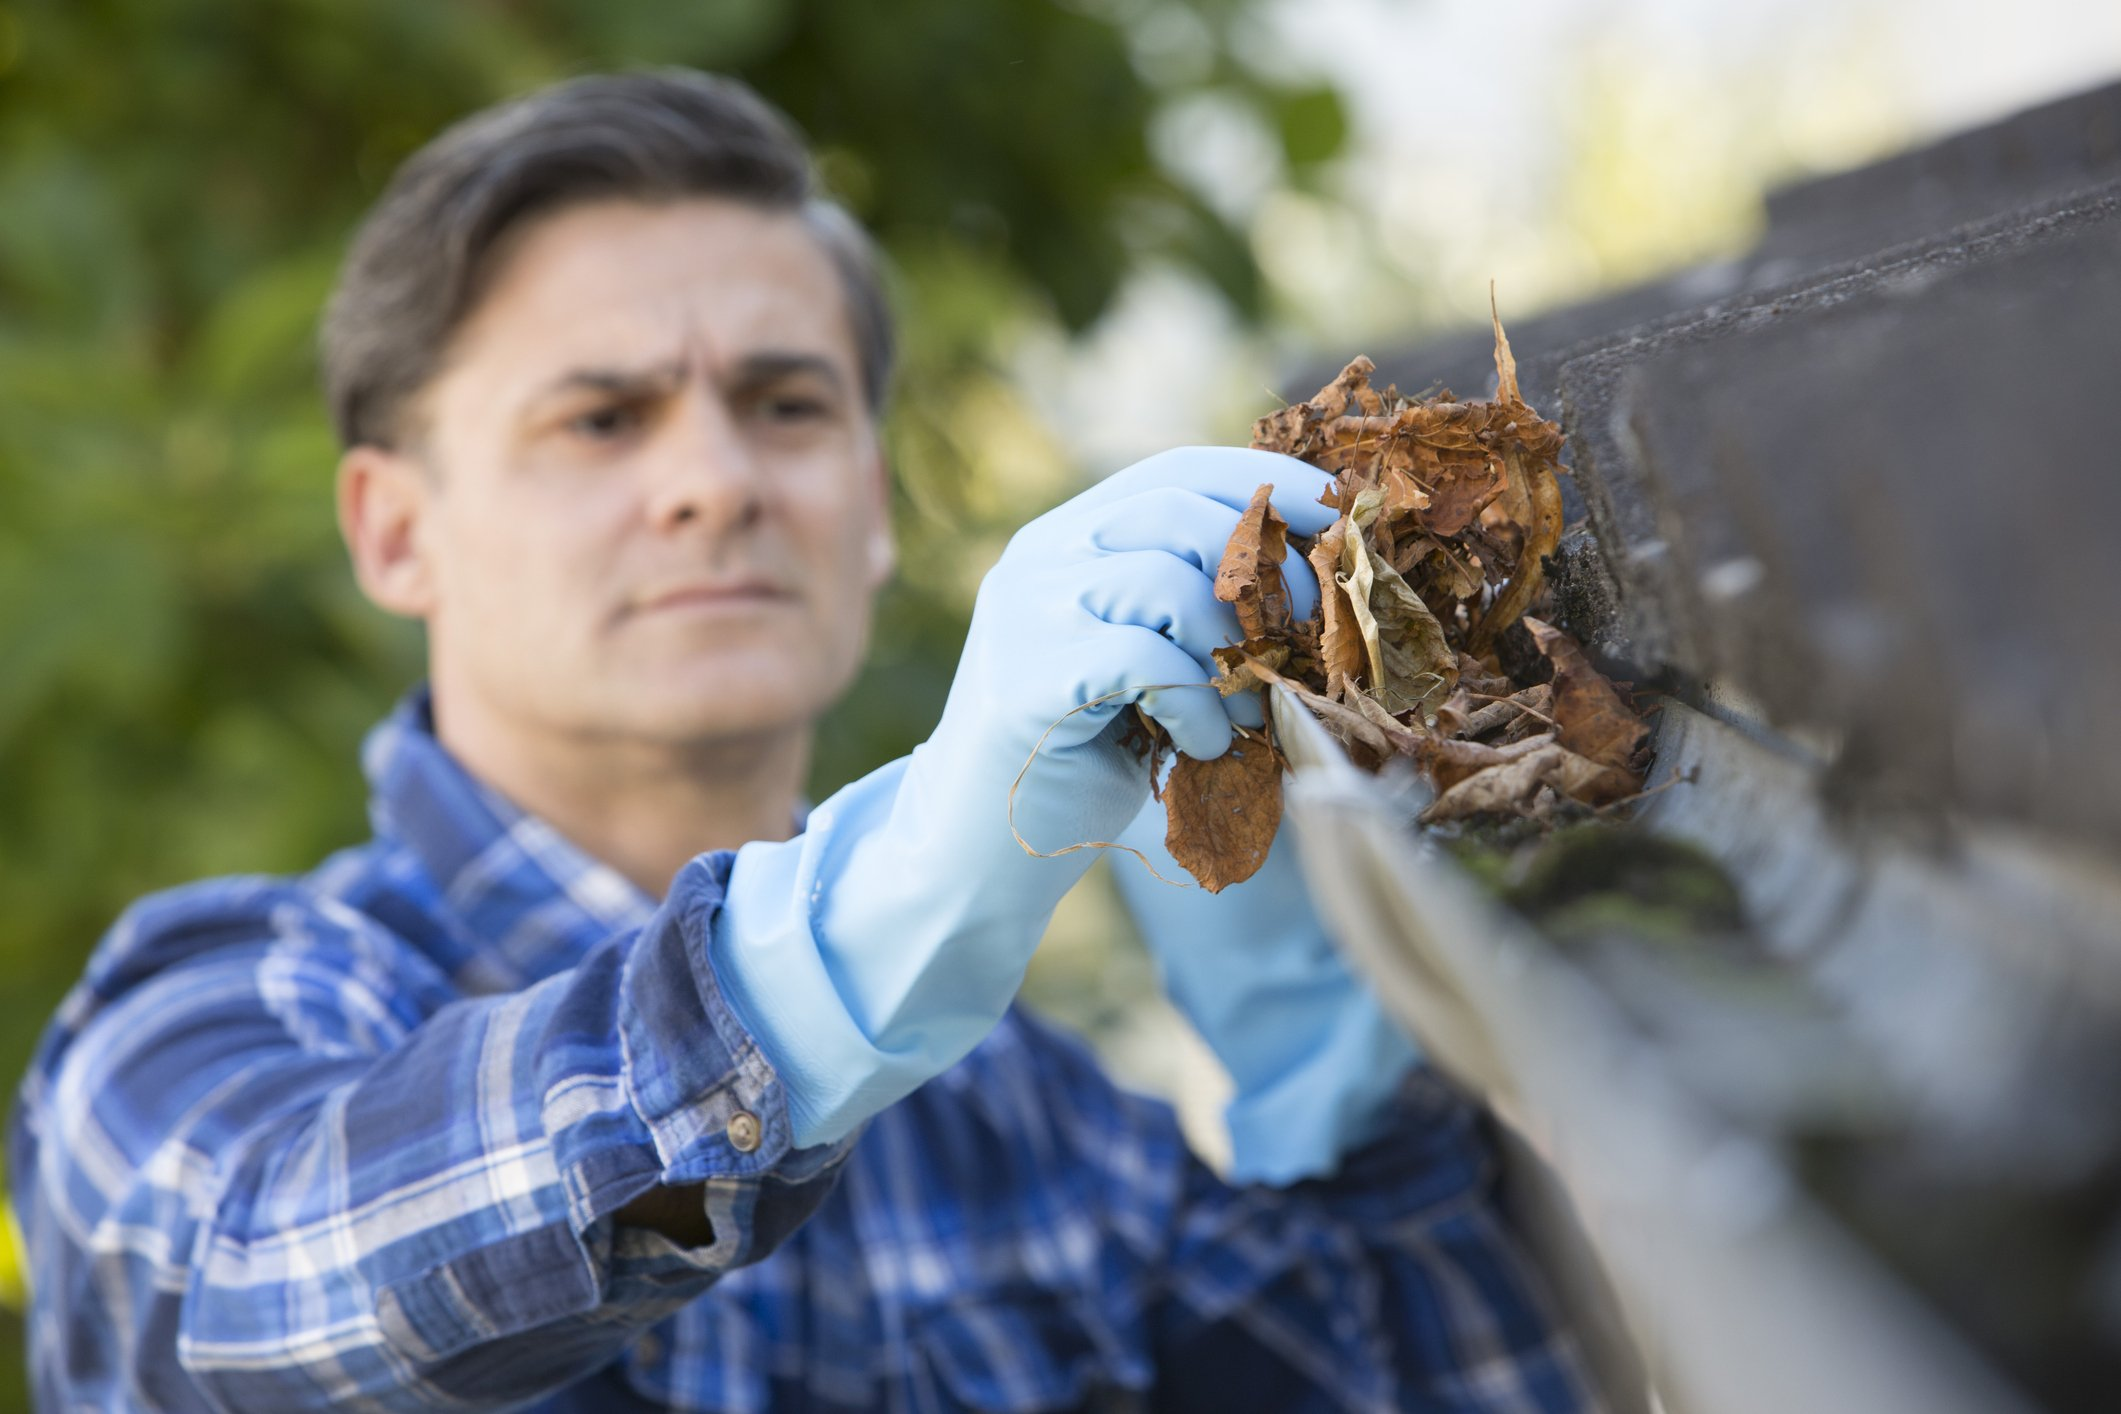 Gutters 101: Cleaning and Maintaining Them